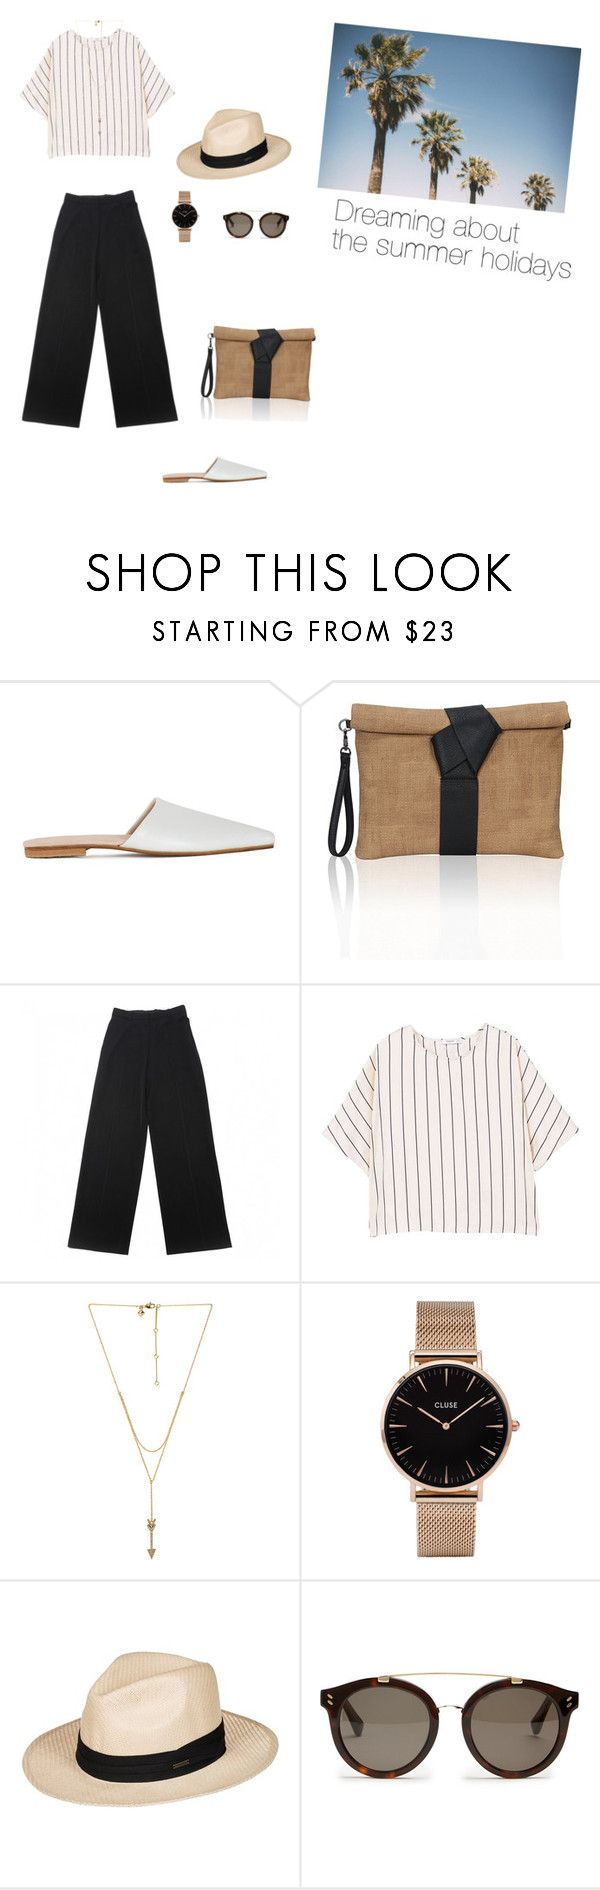 """""""Can't wait the summer holidays"""" by dorey on Polyvore featuring Brother Vellies, Yves Saint Laurent, MANGO, Rebecca Minkoff, CLUSE, Roxy and STELLA McCARTNEY"""